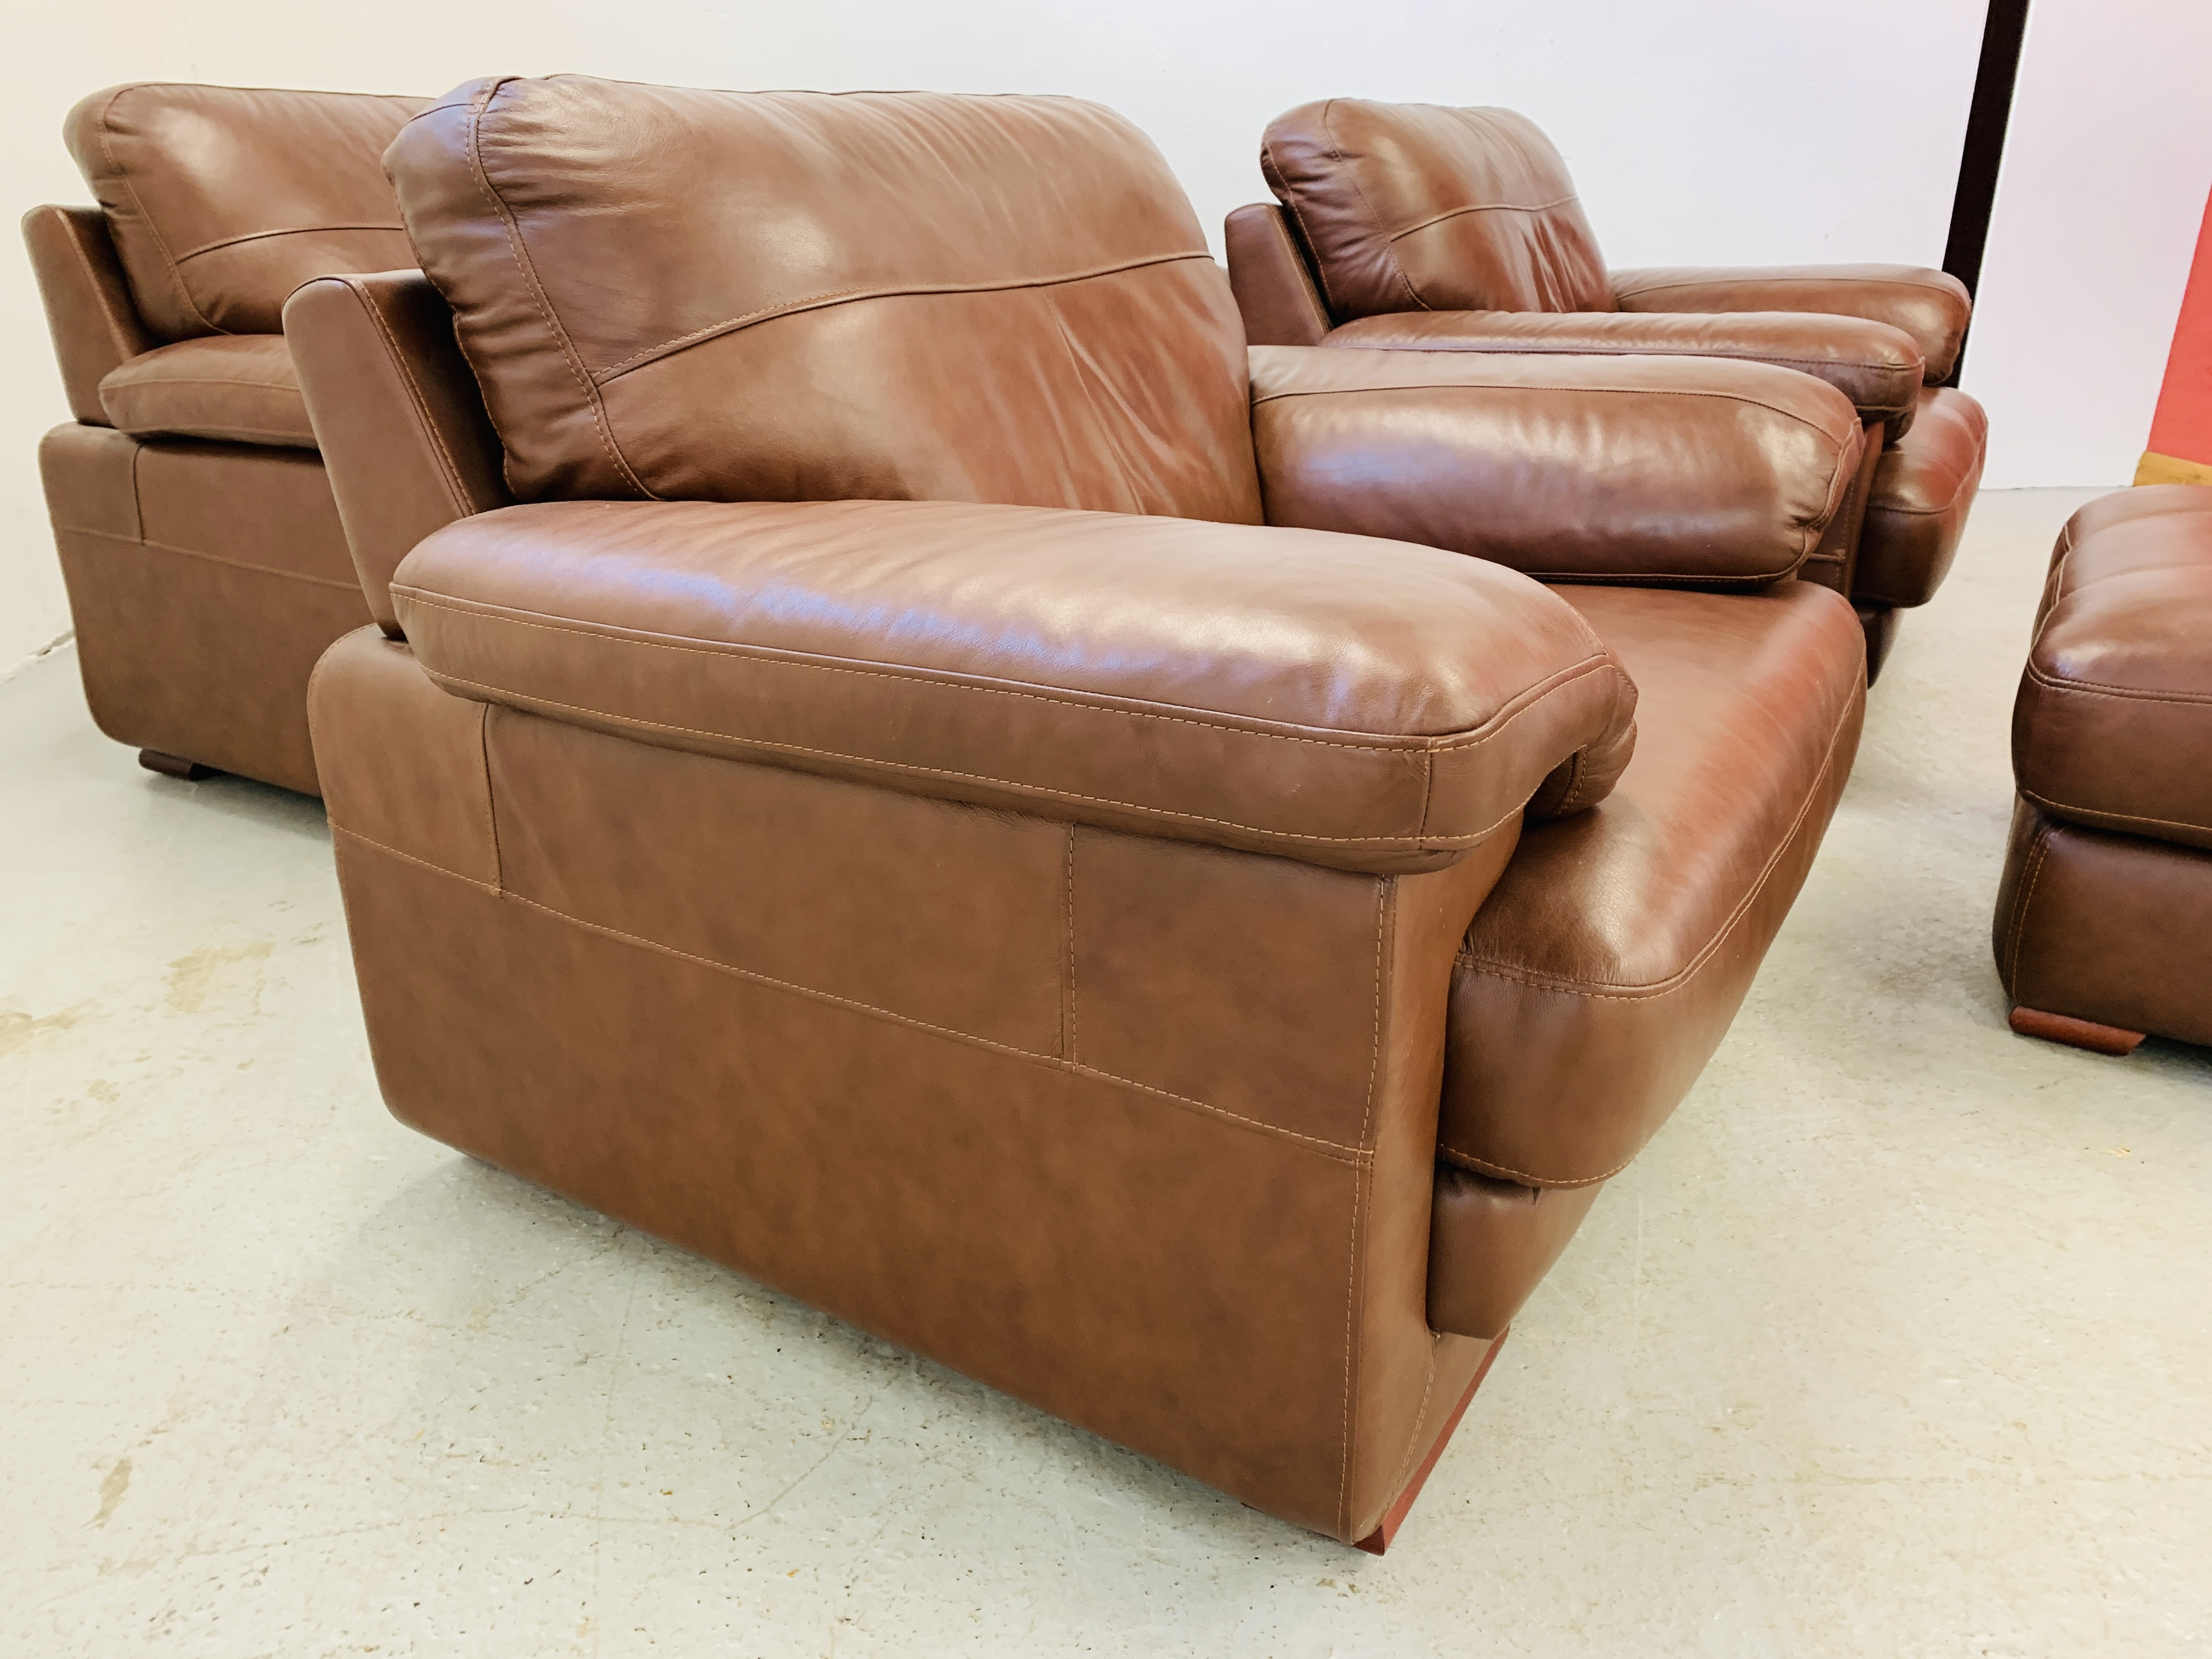 A GOOD QUALITY TAN LEATHER THREE PIECE LOUNGE SUITE WITH MATCHING POUFFE - Image 11 of 17